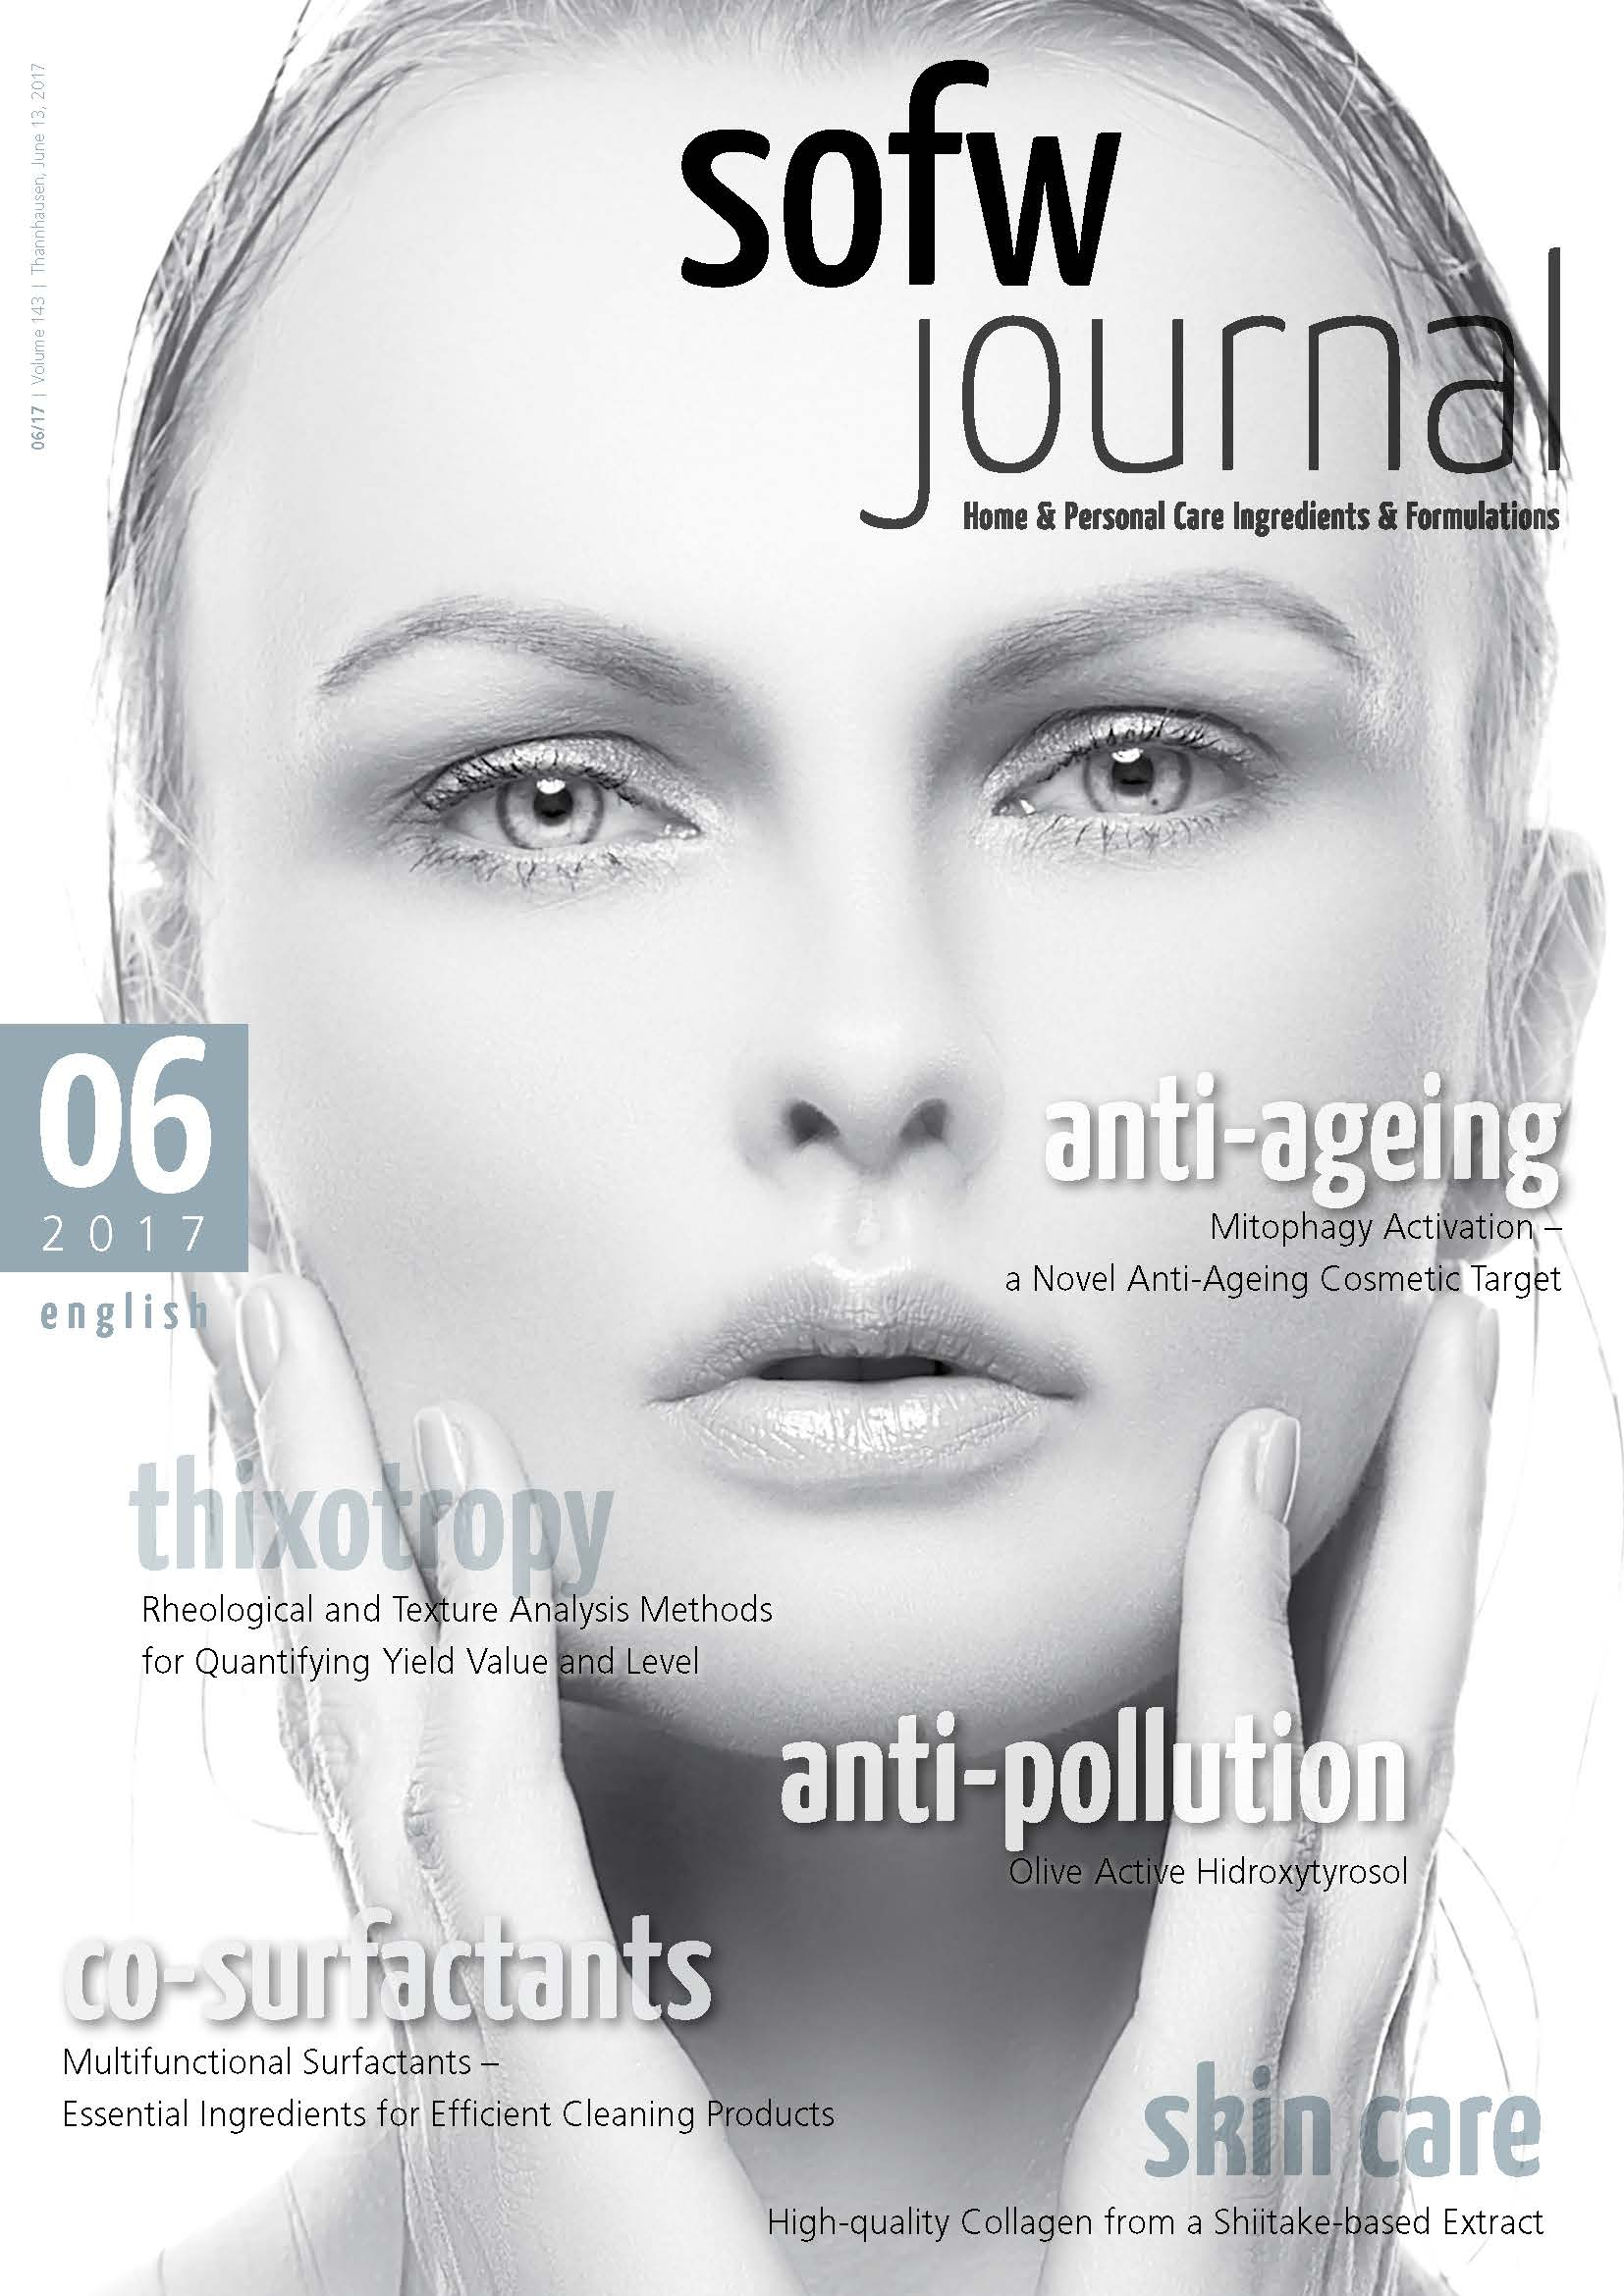 sofwjournal_en_2017_06_cover